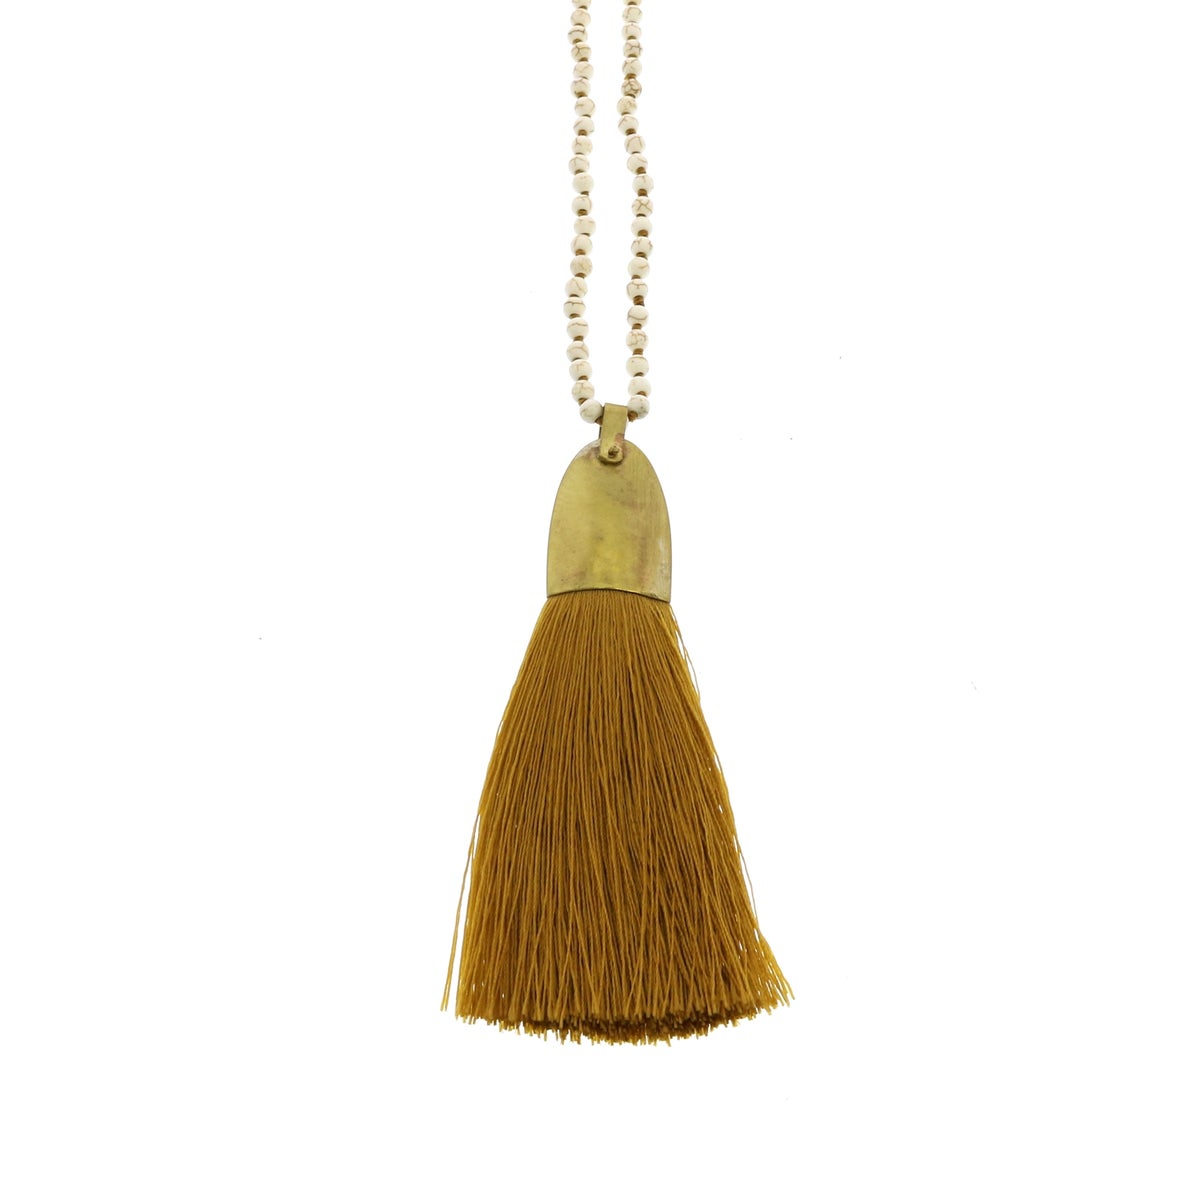 Image of Brass & Tassel Pendant Necklace